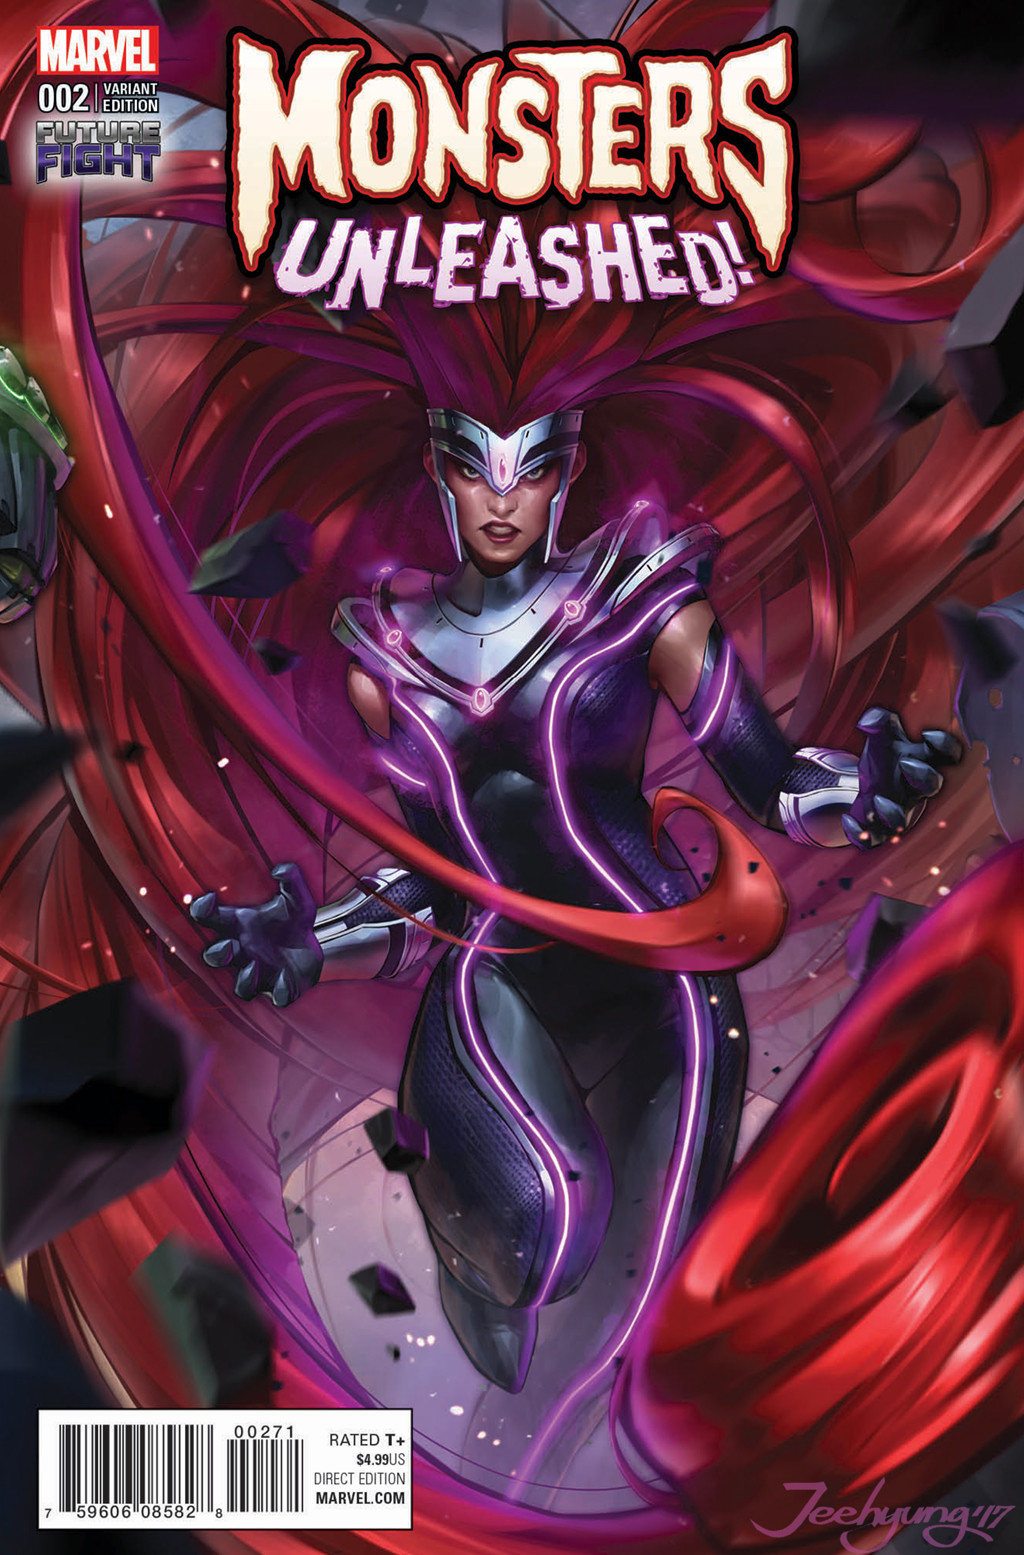 Jeehyung lee comic cover 02 medusa title name